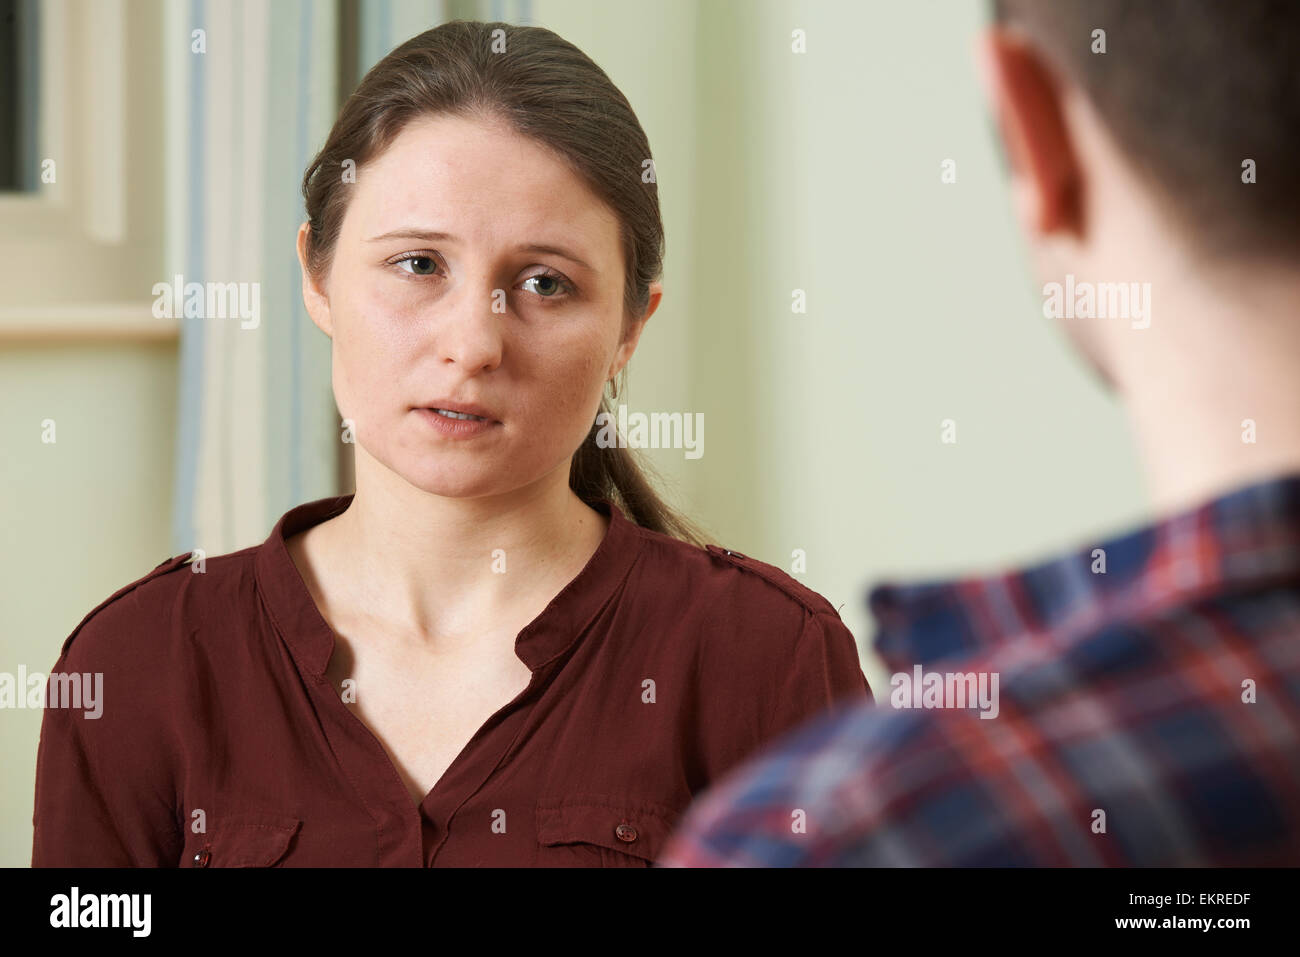 Depressed Young Woman Talking To Counsellor - Stock Image